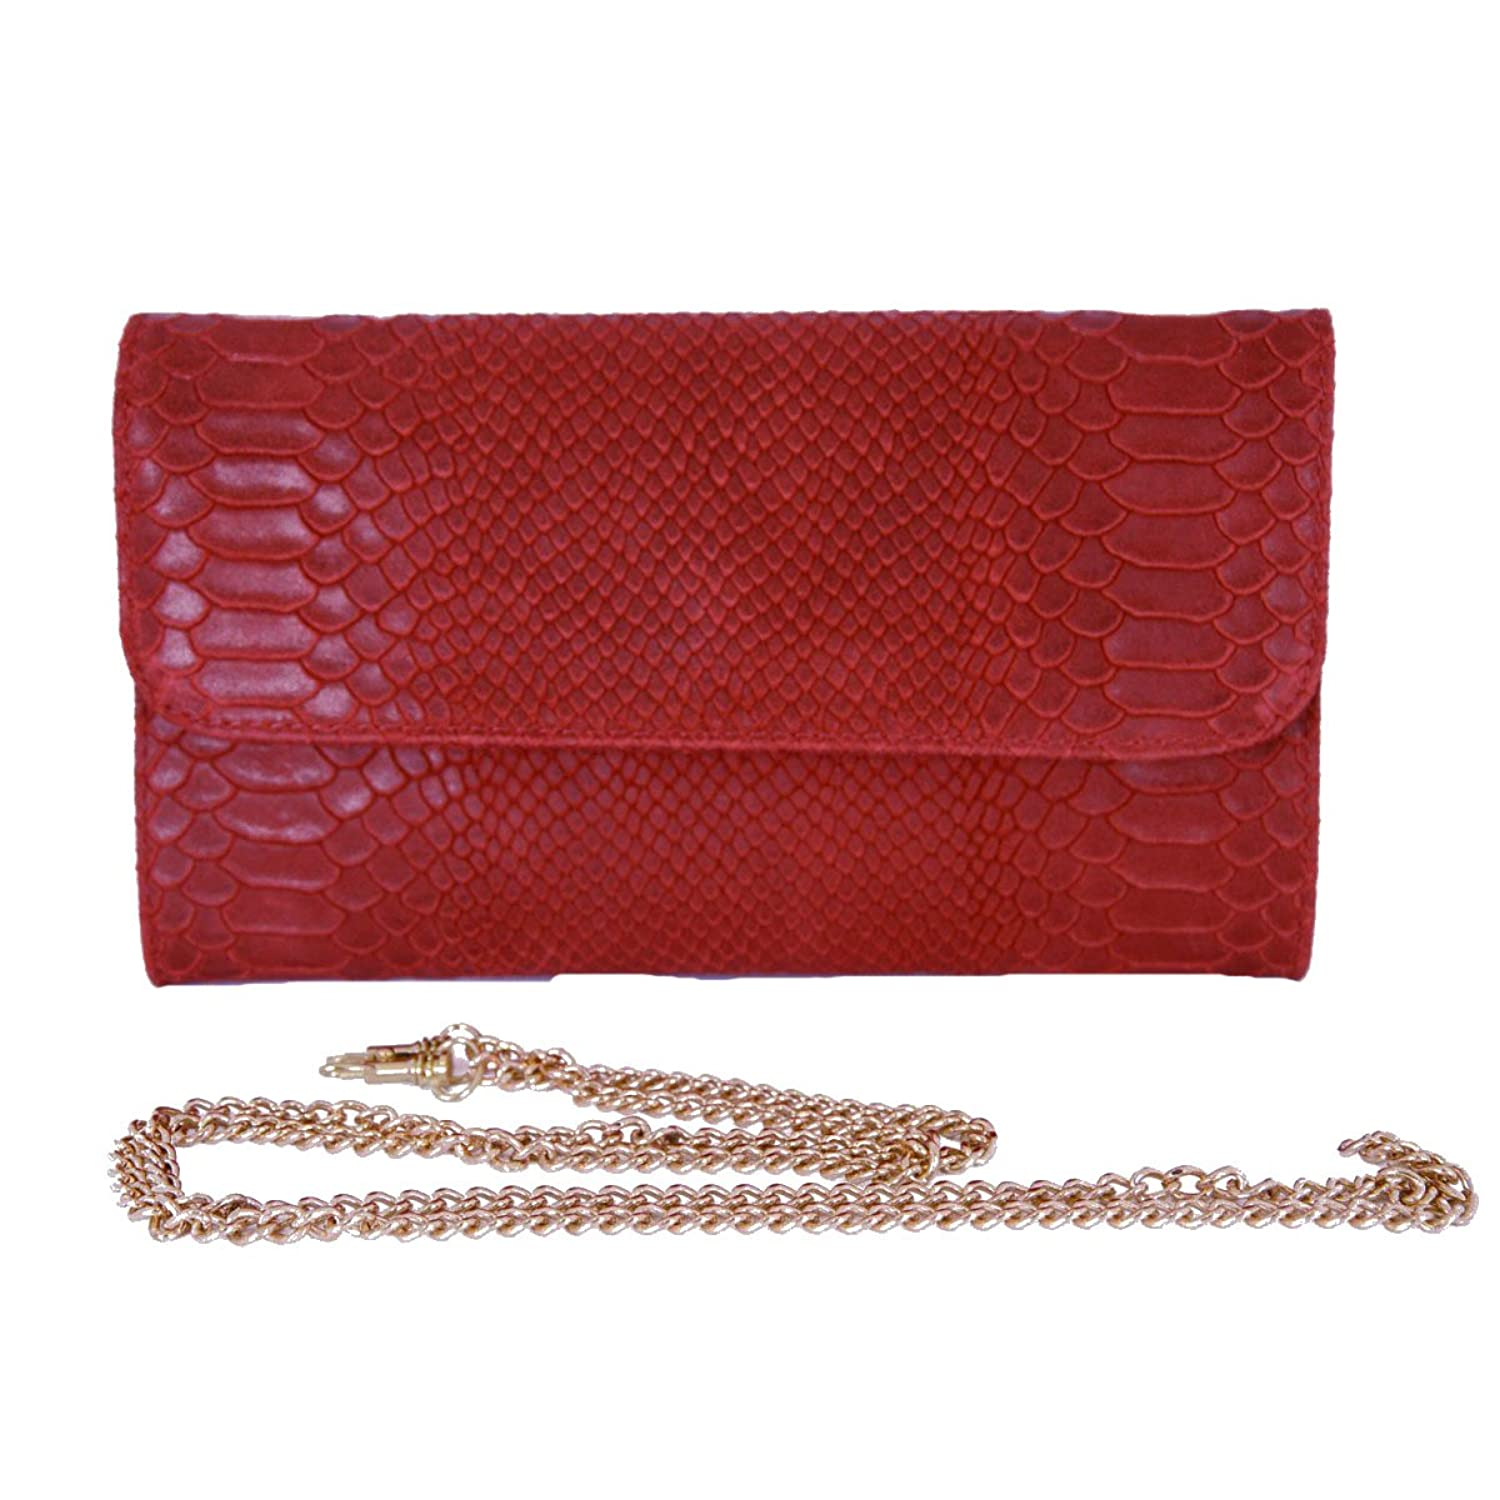 Genuine Leather Python Printed Woman Clutch Color Red